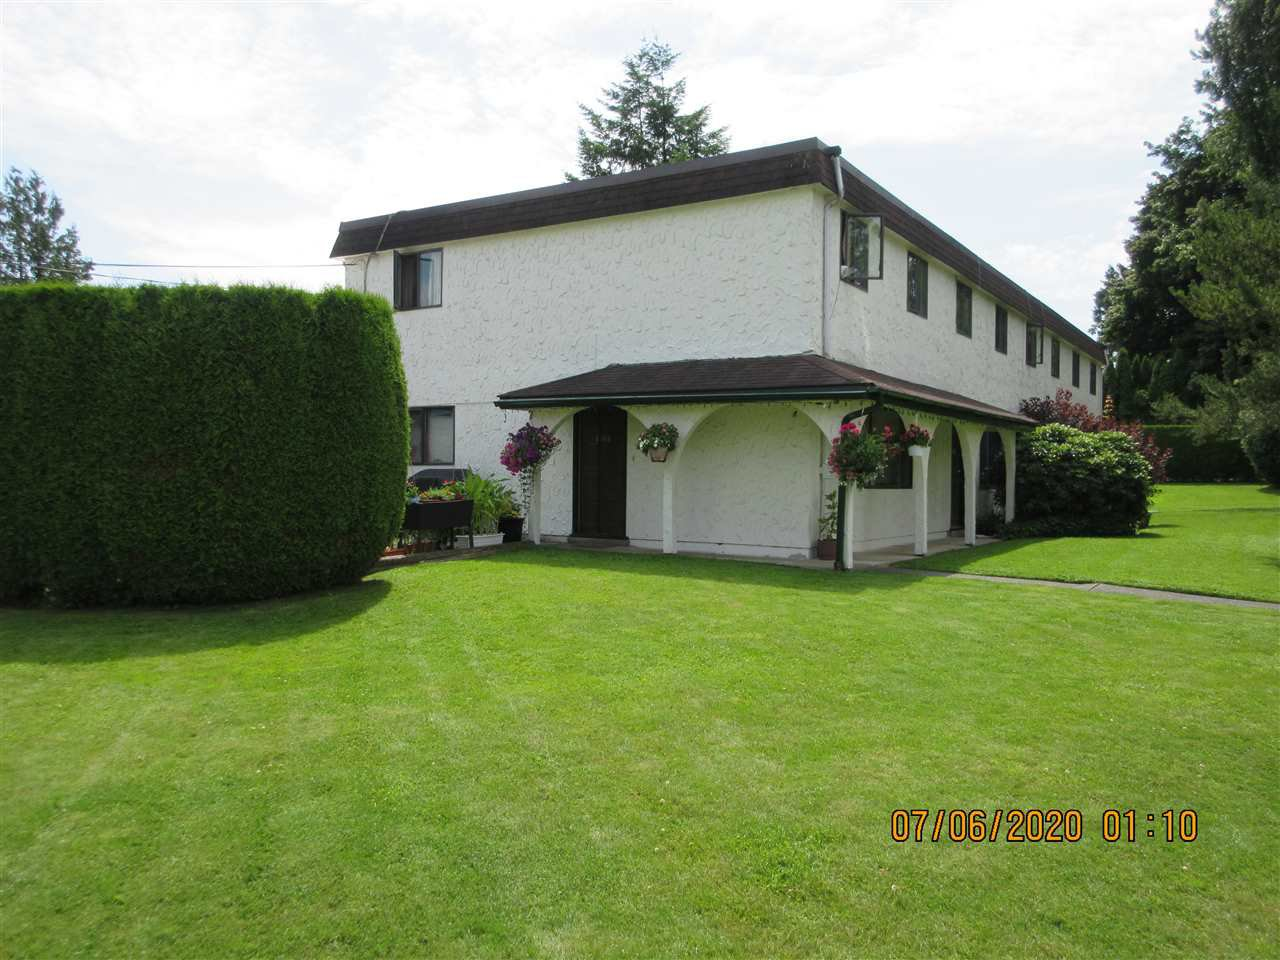 Main Photo: 2988 268A Street in Langley: Aldergrove Langley Townhouse for sale : MLS®# R2472593